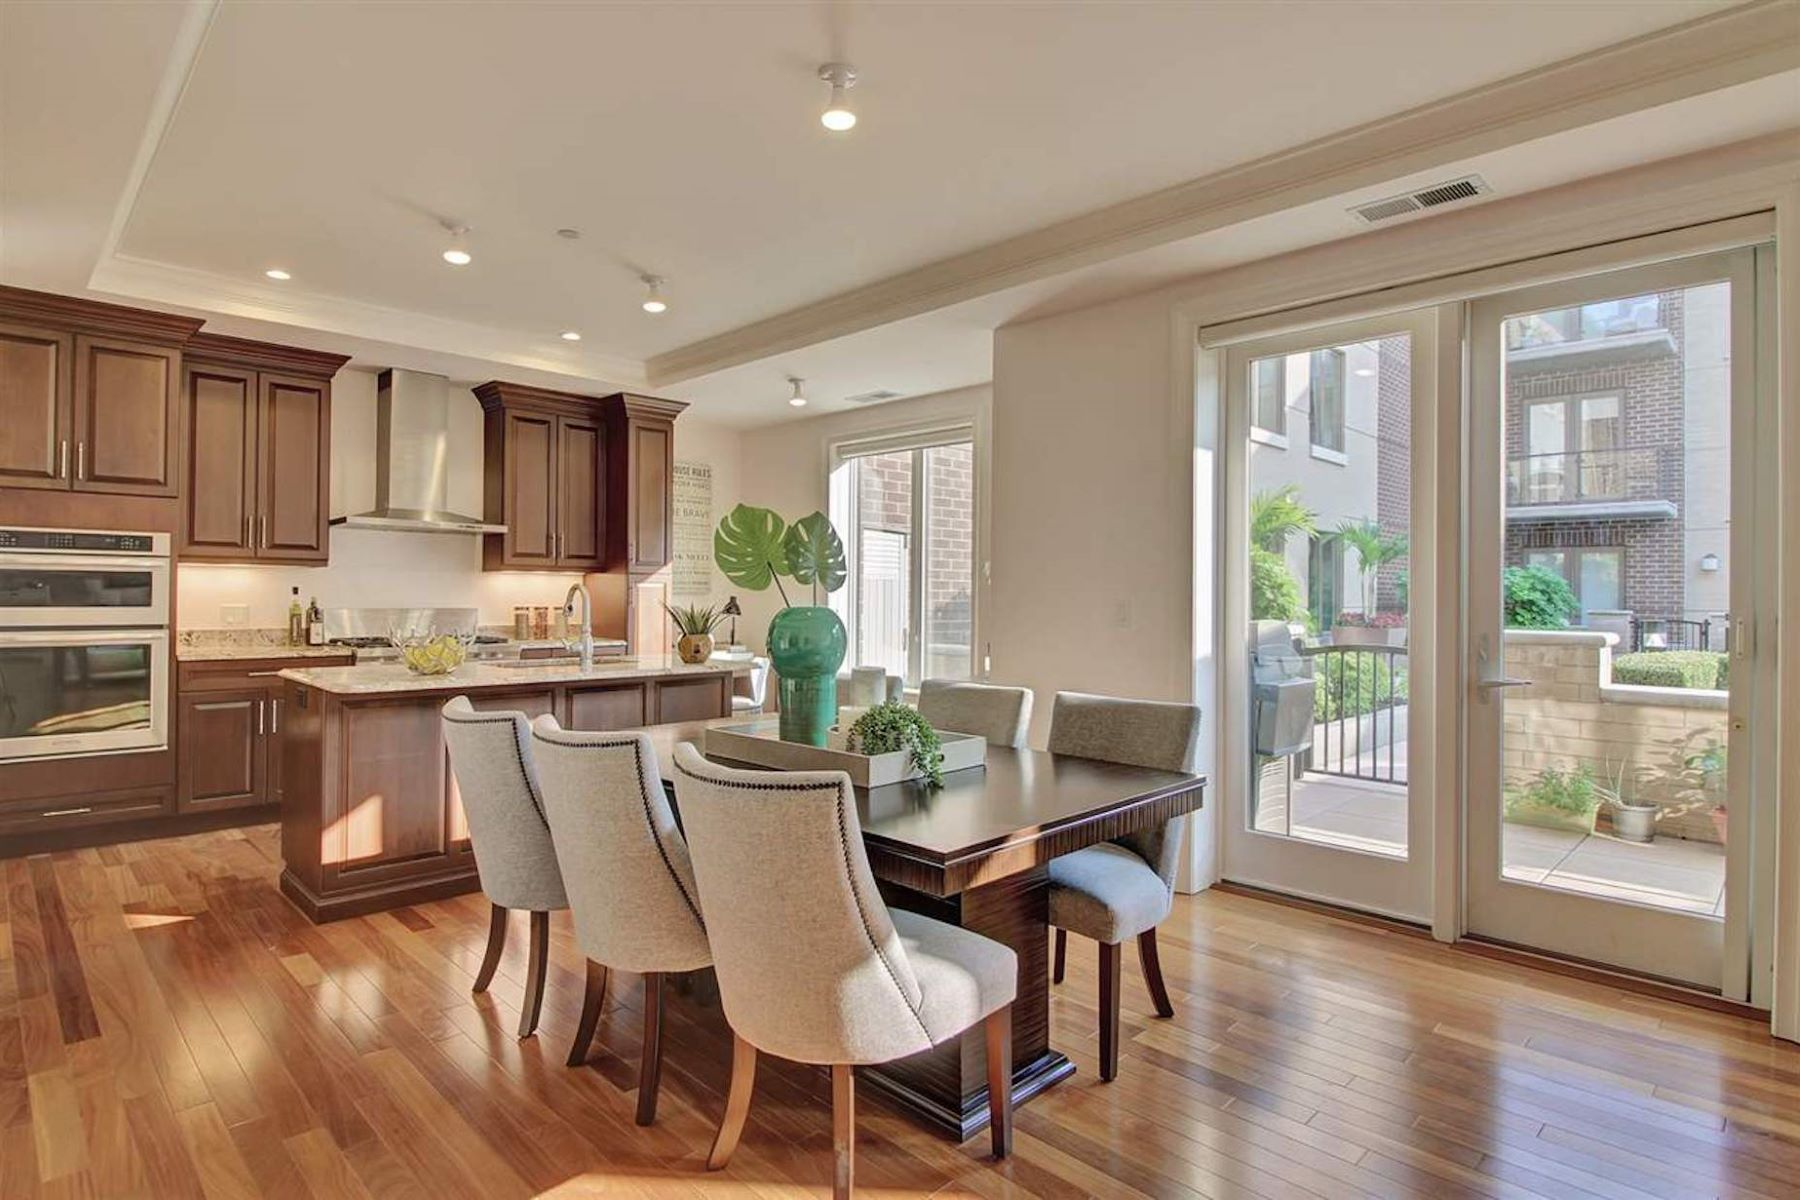 Condominiums for Sale at Henley on Hudson 250 Henley Place #206, Weehawken, New Jersey 07086 United States